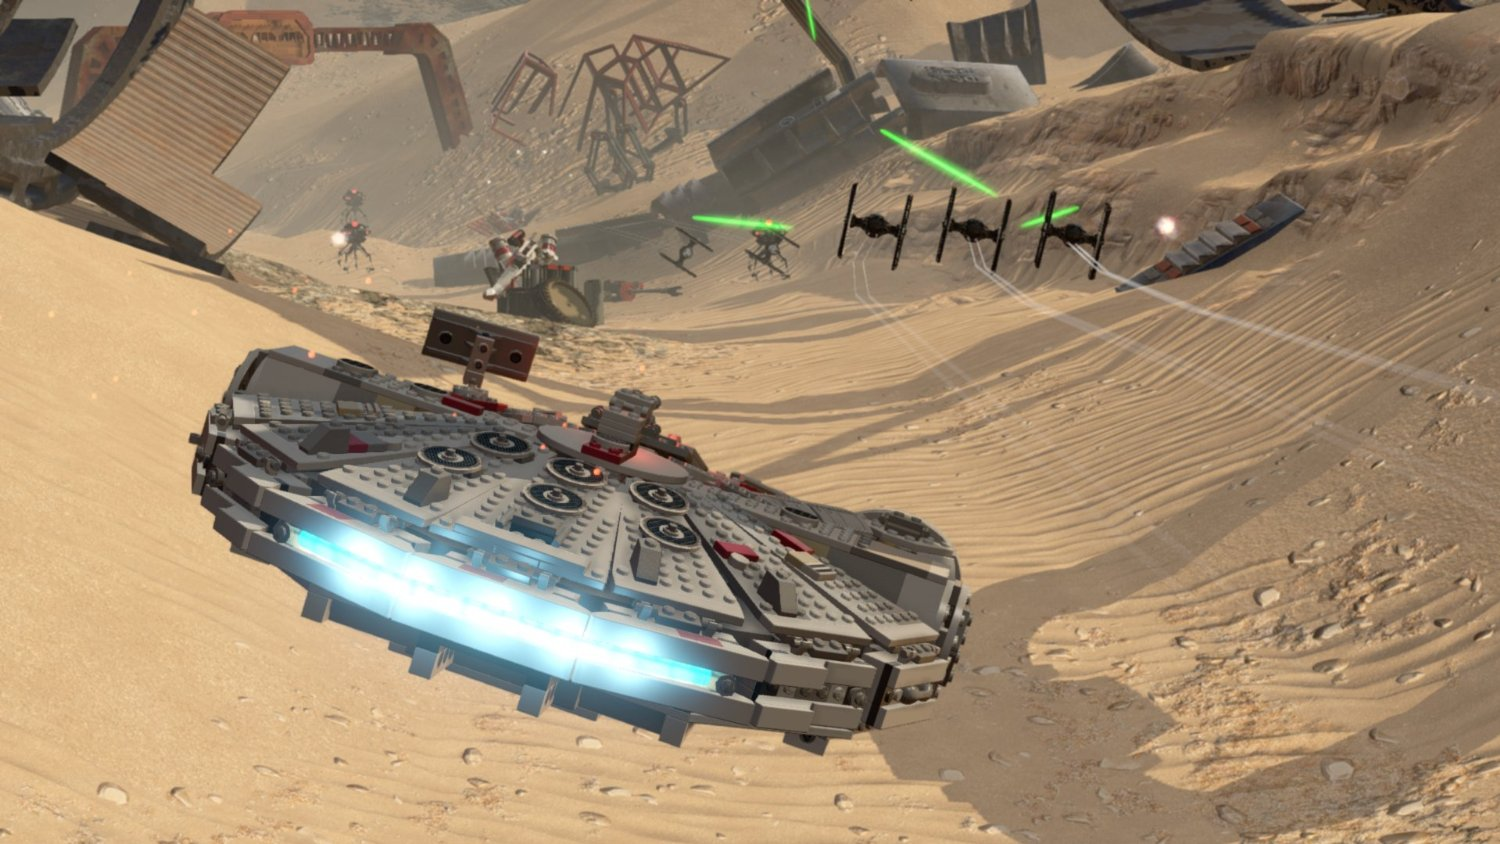 Lego Star Wars: The Force Awakens pro PC hra